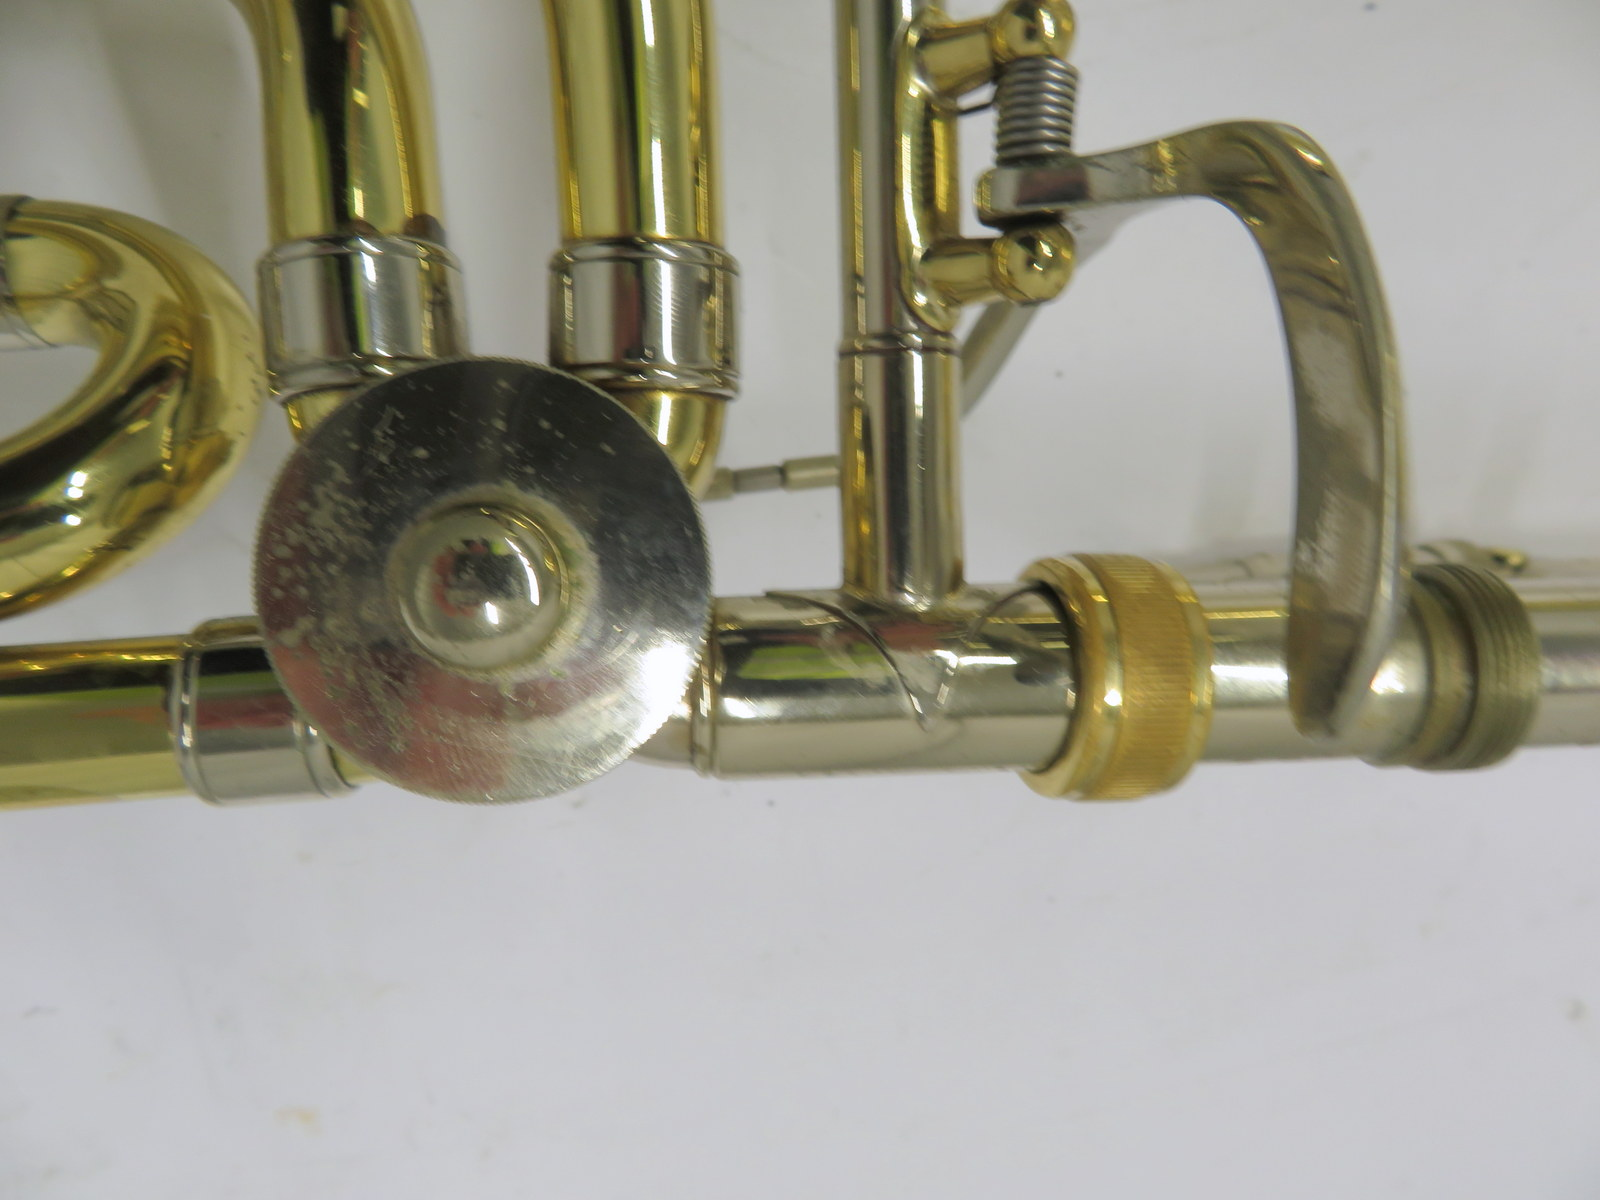 Lot 51 - Bach Stradivarius model 42 trombone with case. Serial number: 28787.